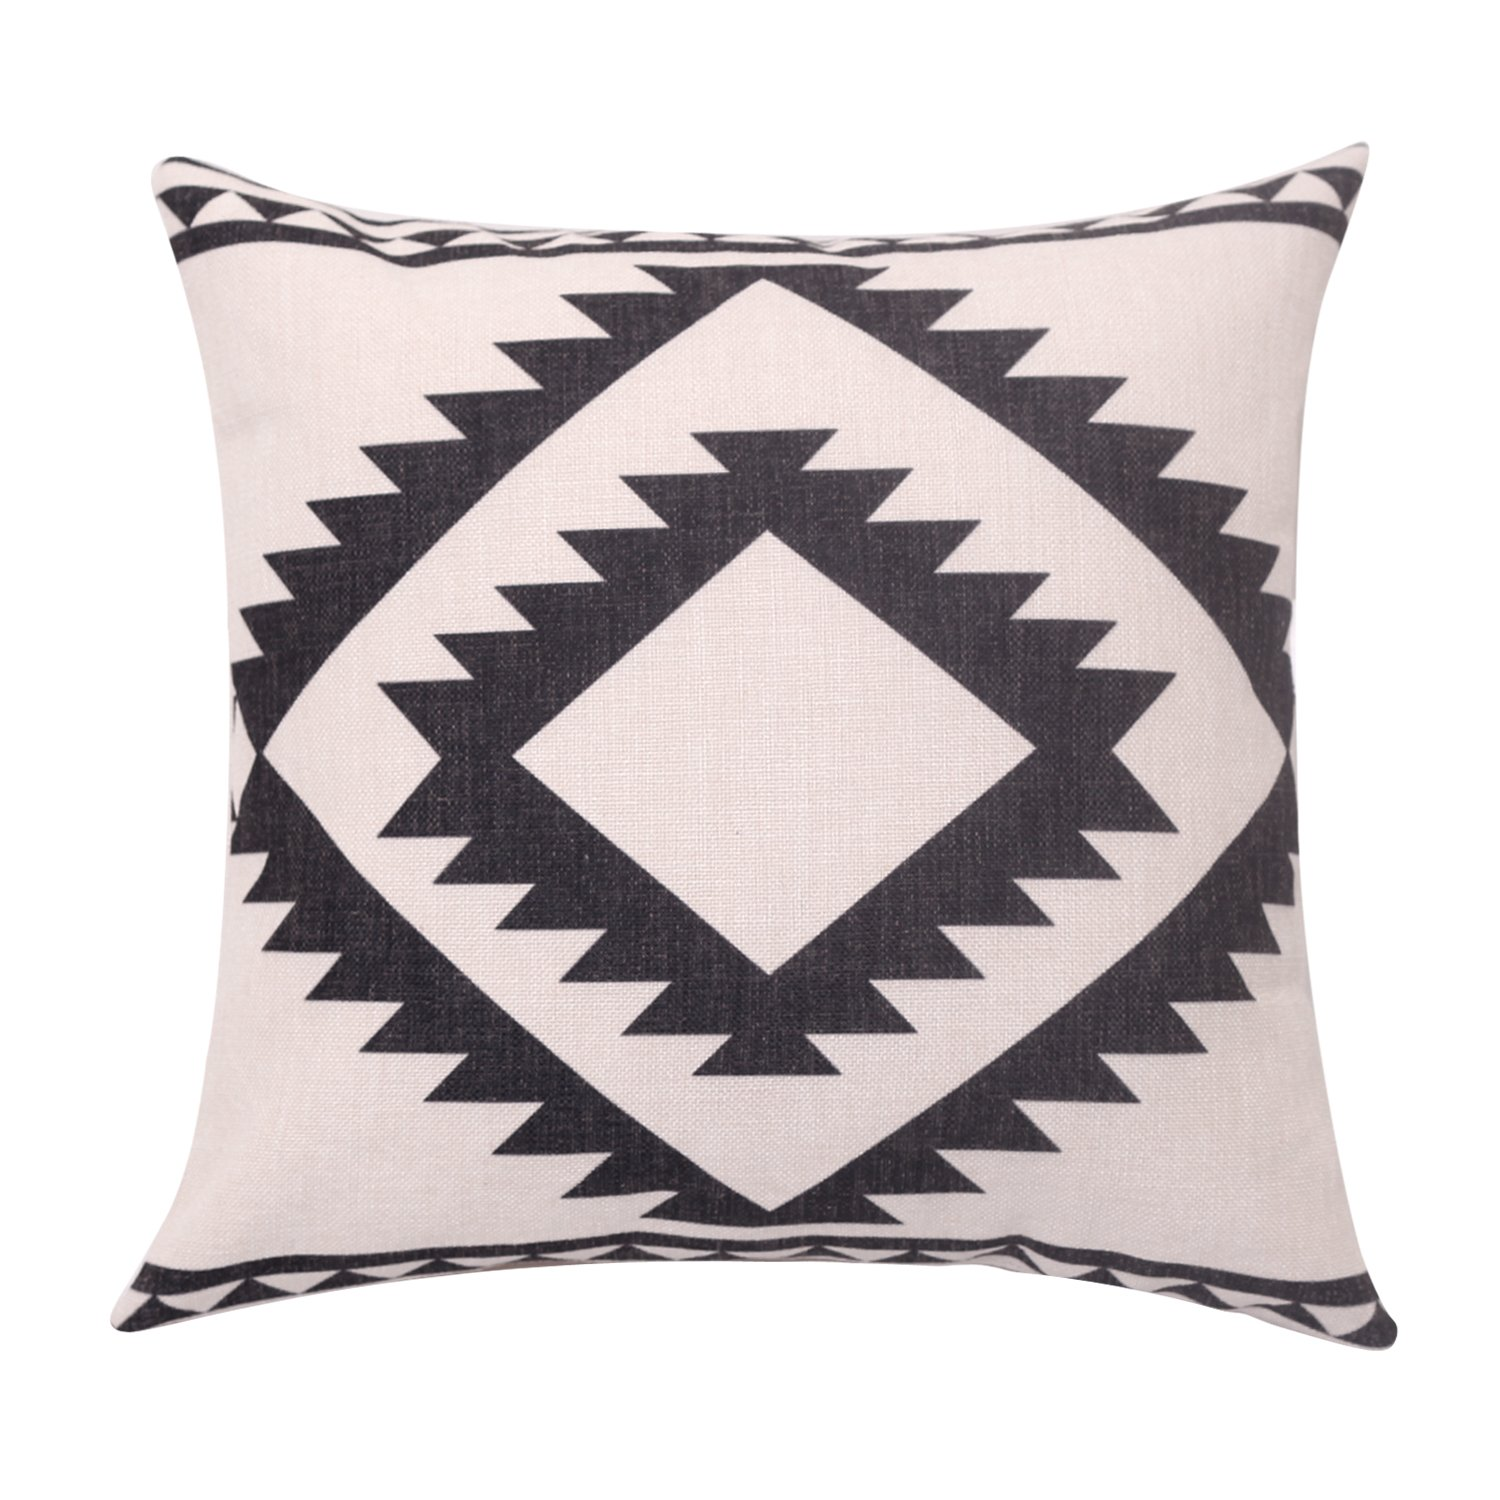 BreezyLife Aztec Throw Pillow Cover Tribal Decorative Pillow Case Square Linen Cushion Cover for Sofa Couch Farmhouse Outdoor Housewarming Gift 22x22 Inches